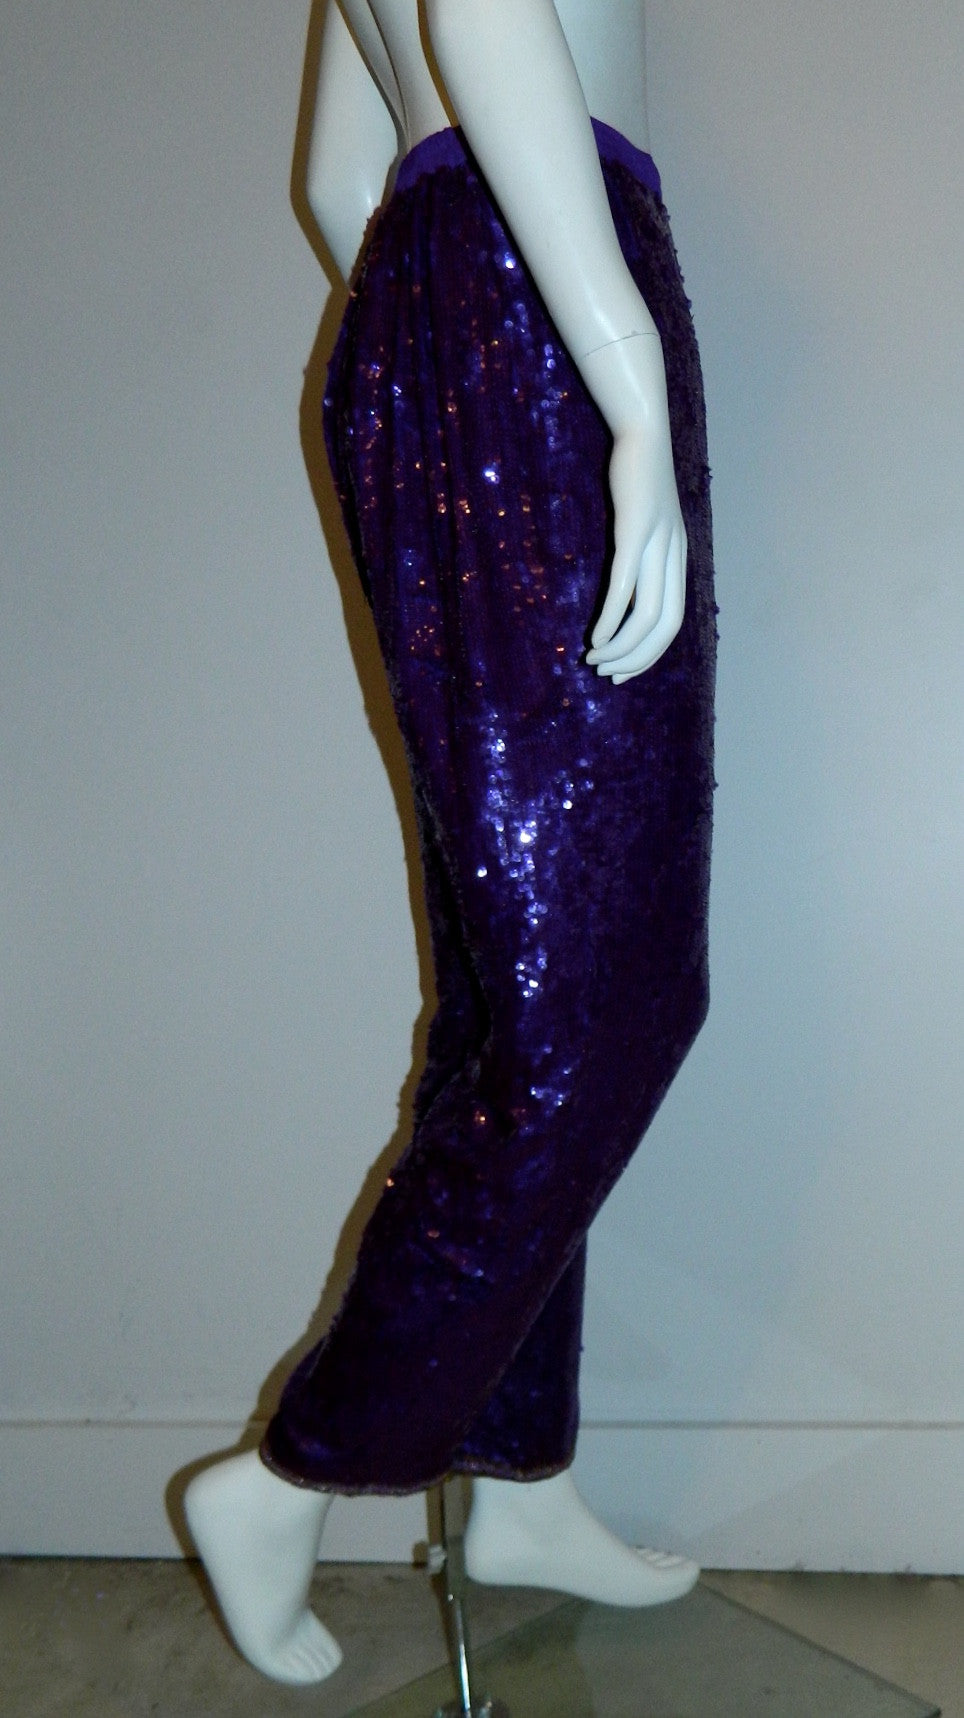 1980s sequin pants / PURPLE sequined trousers / vintage peg leg formal pants XS - S - M